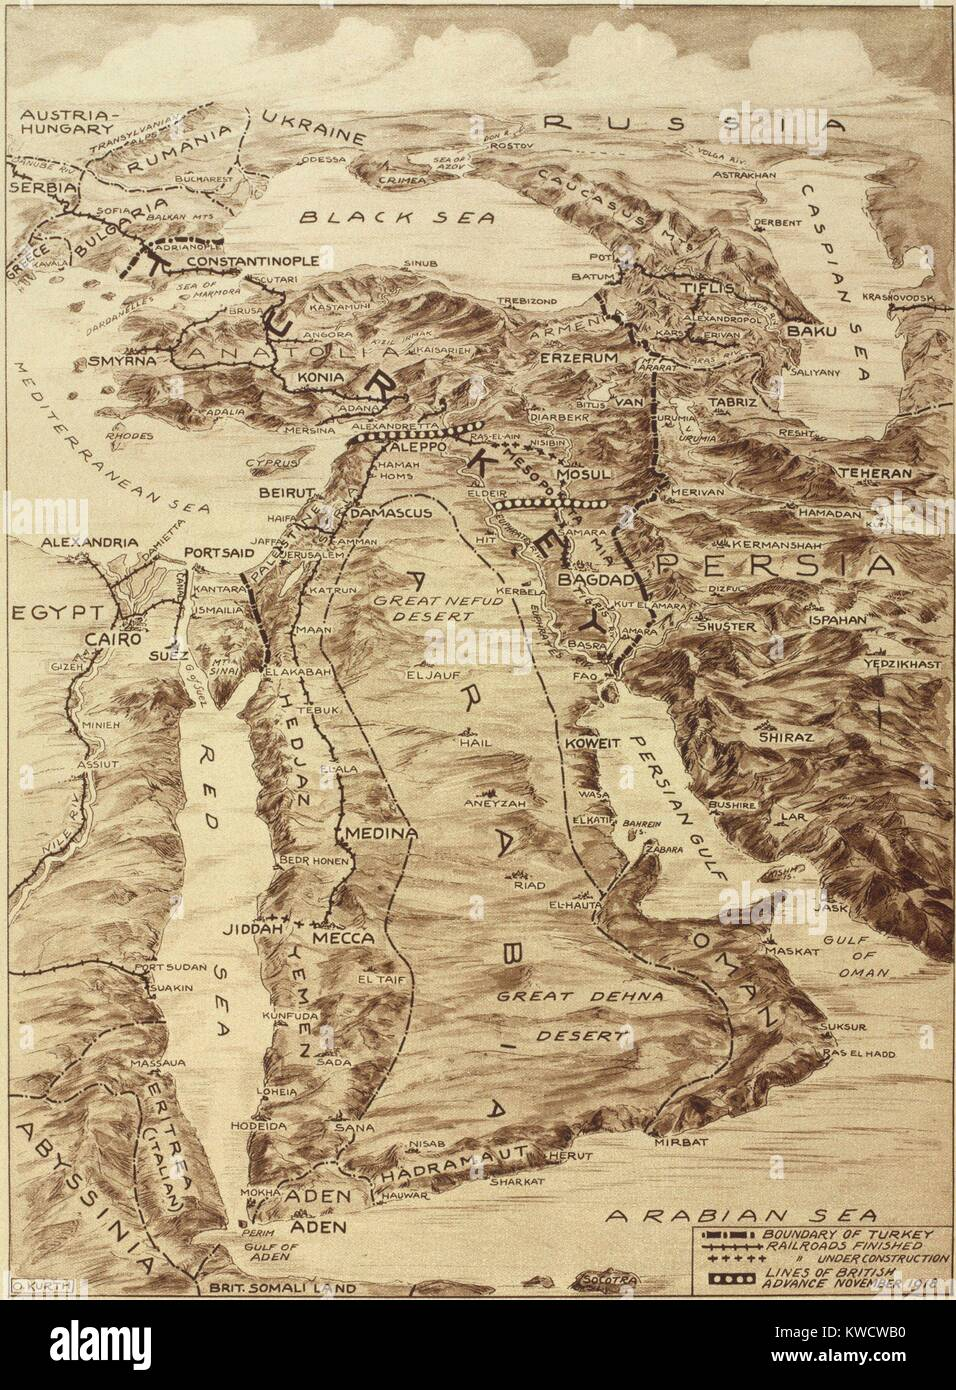 First World War Map of the Middle East. When defeated Turkey lost its Ottoman Empire, Britain and France implemented - Stock Image